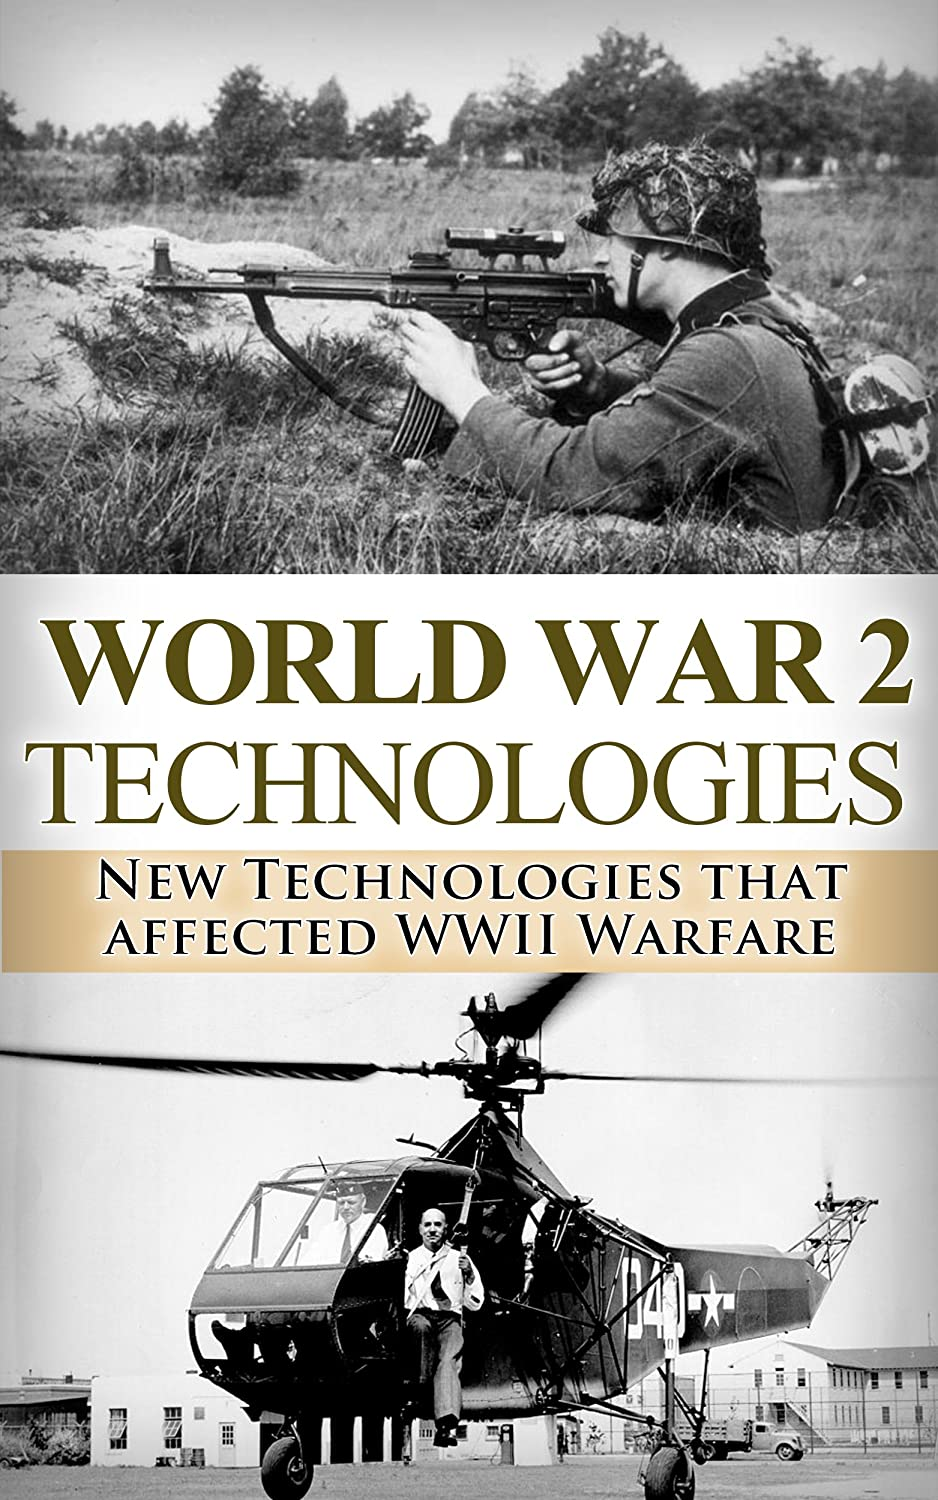 technological inventions of world war i essay After world war ii ended, many americans were eager to have children because they were confident that the future held nothing but peace and prosperity.